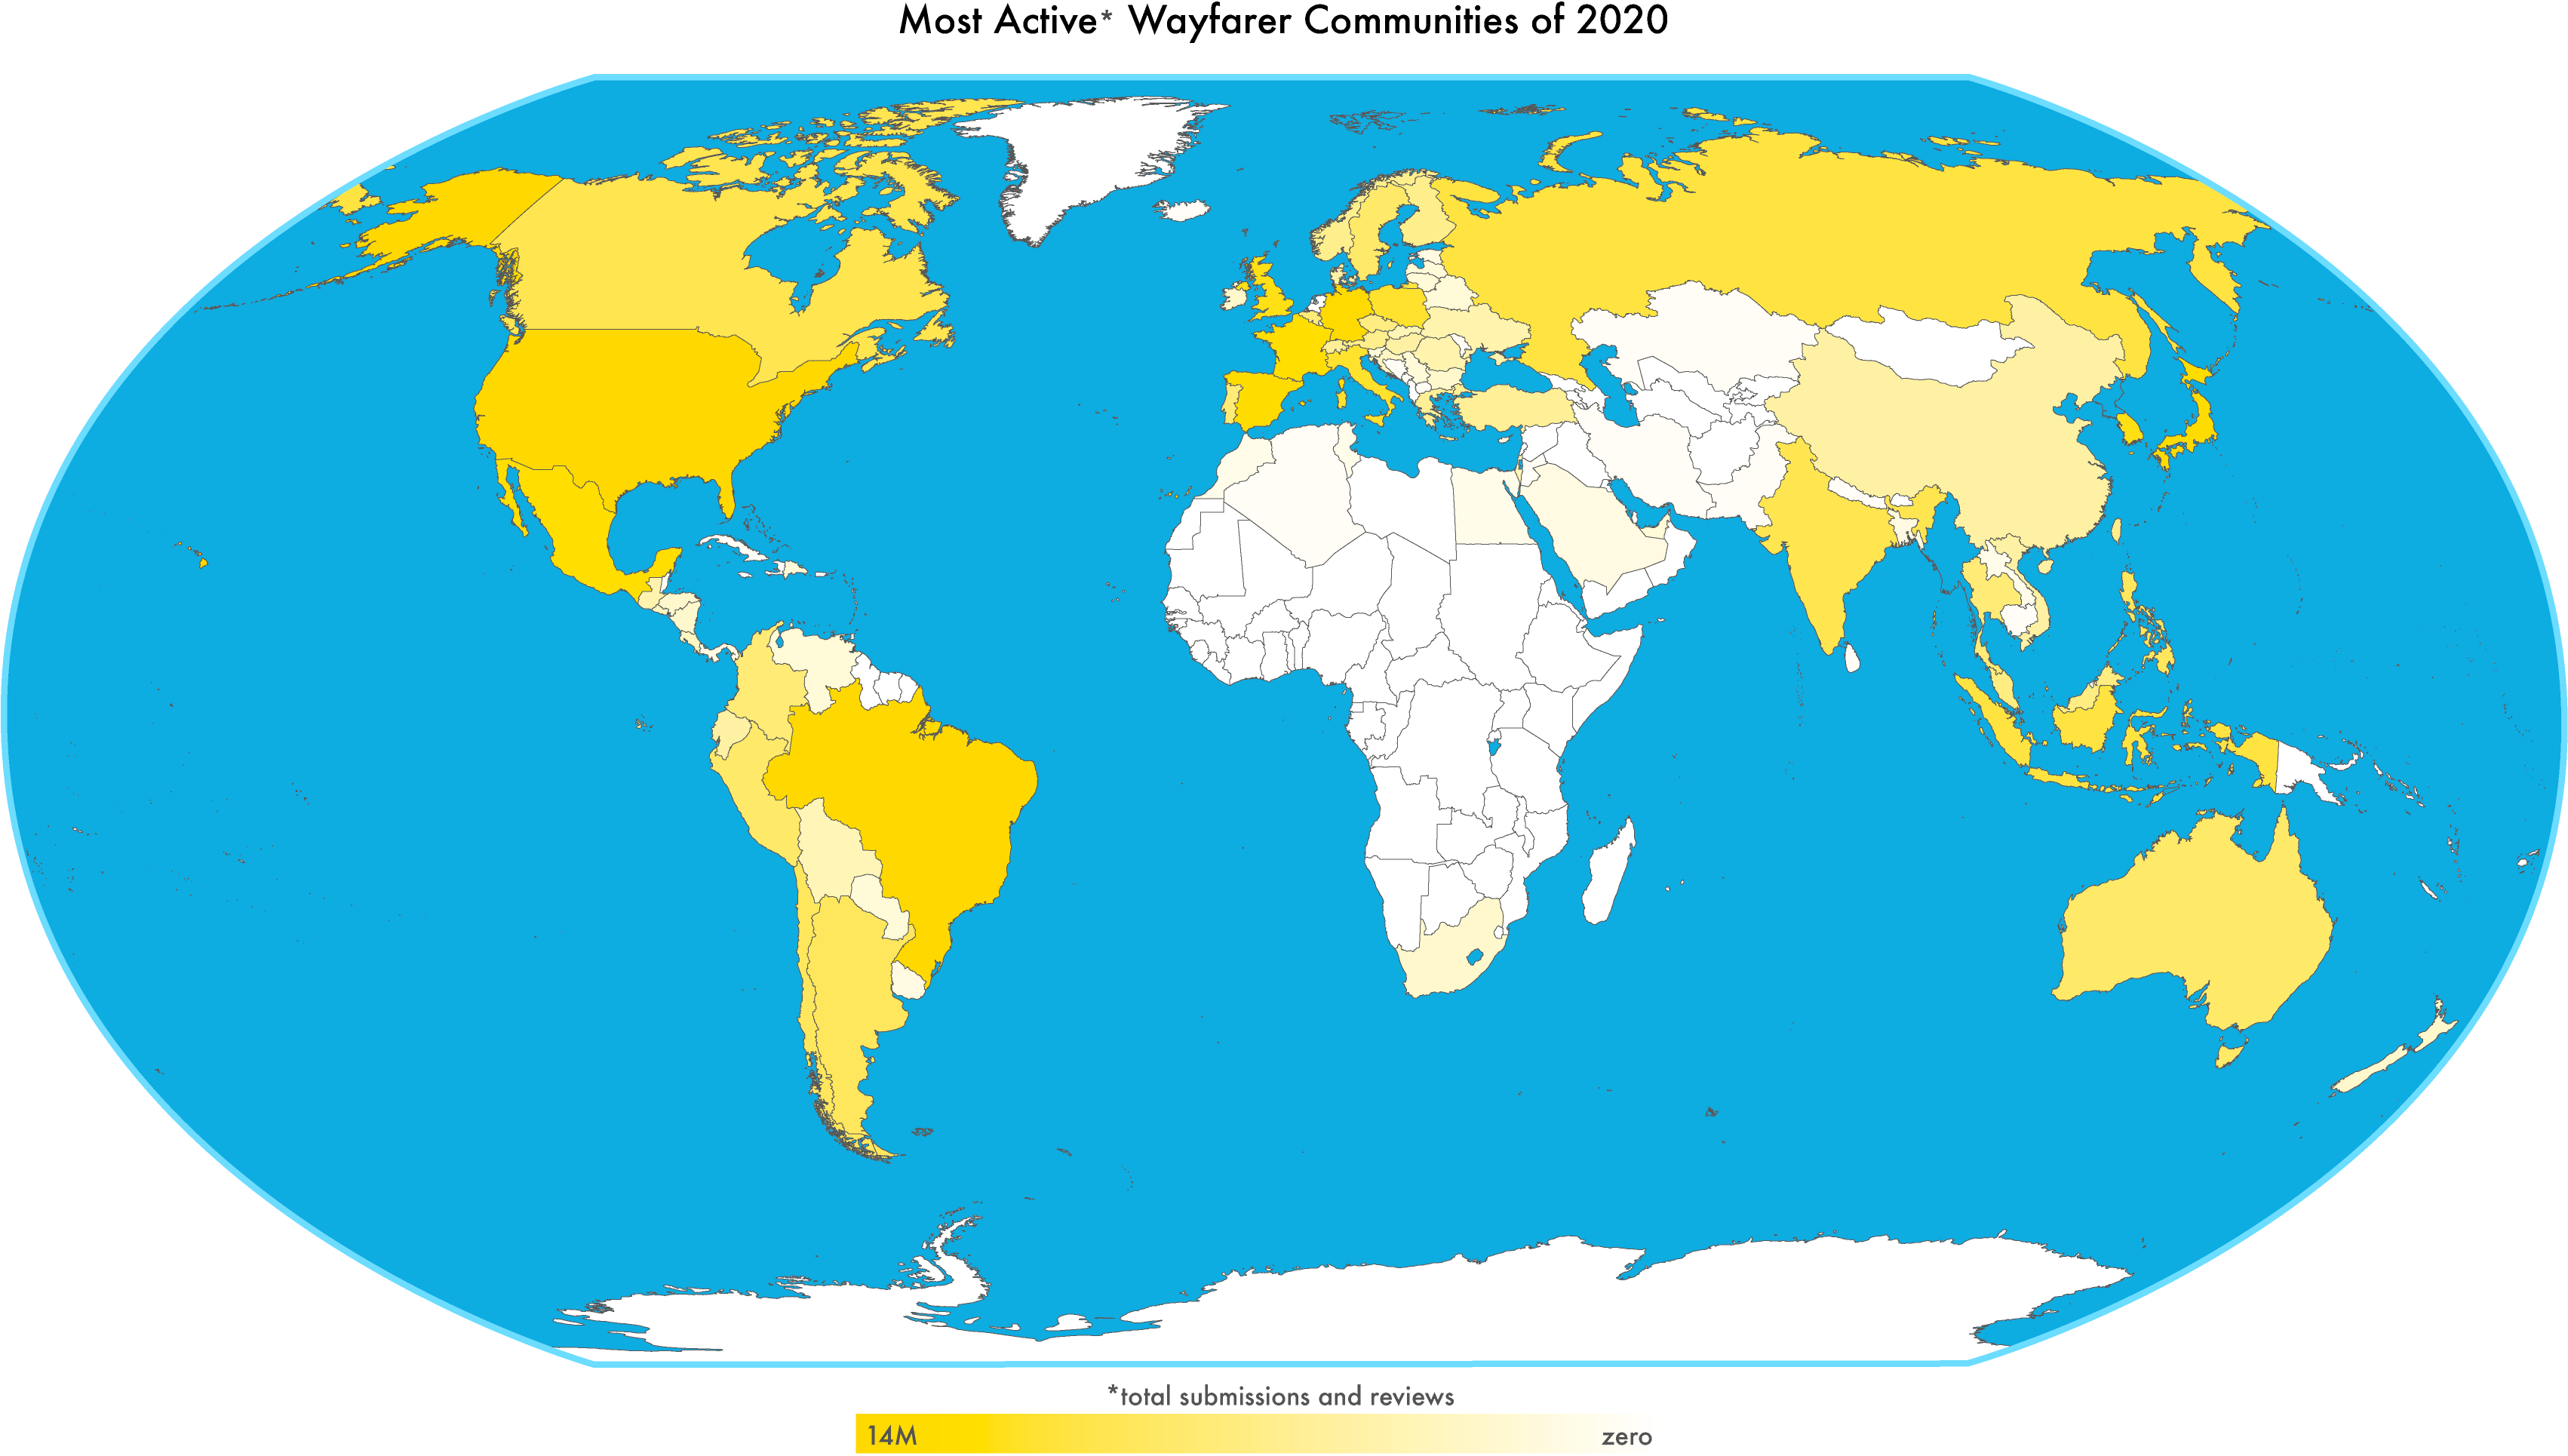 World map showing the most active Wayfarer communities in 2020